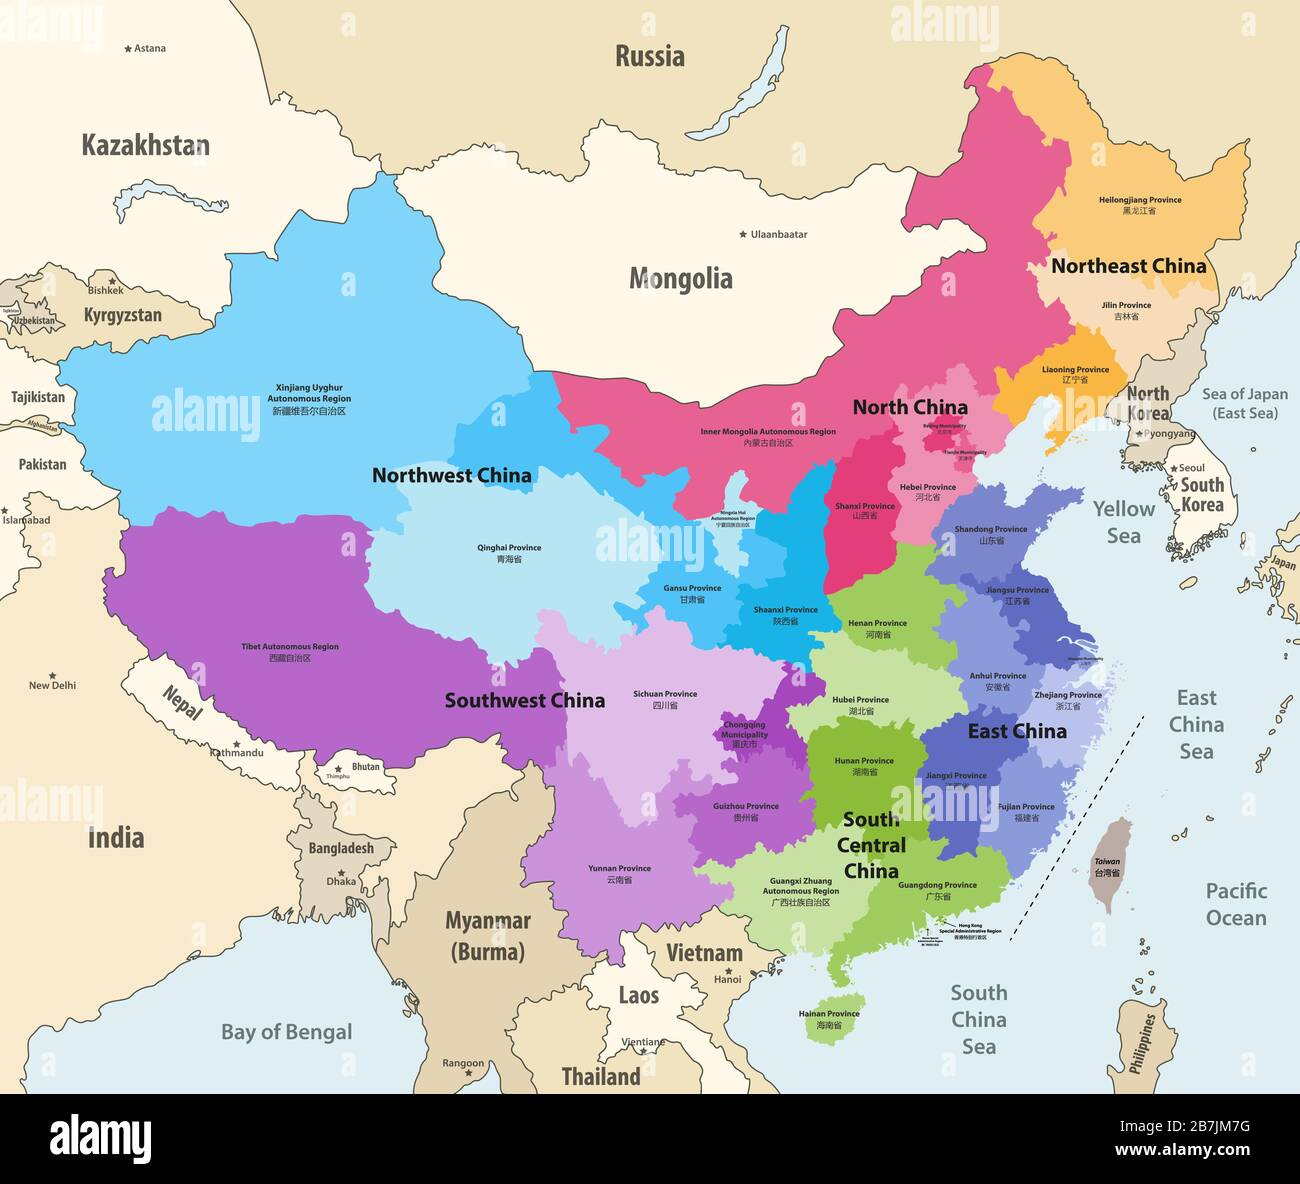 map of china and its surrounding countries Vector Map Of China Provinces Chinese Names Gives In Parentheses map of china and its surrounding countries